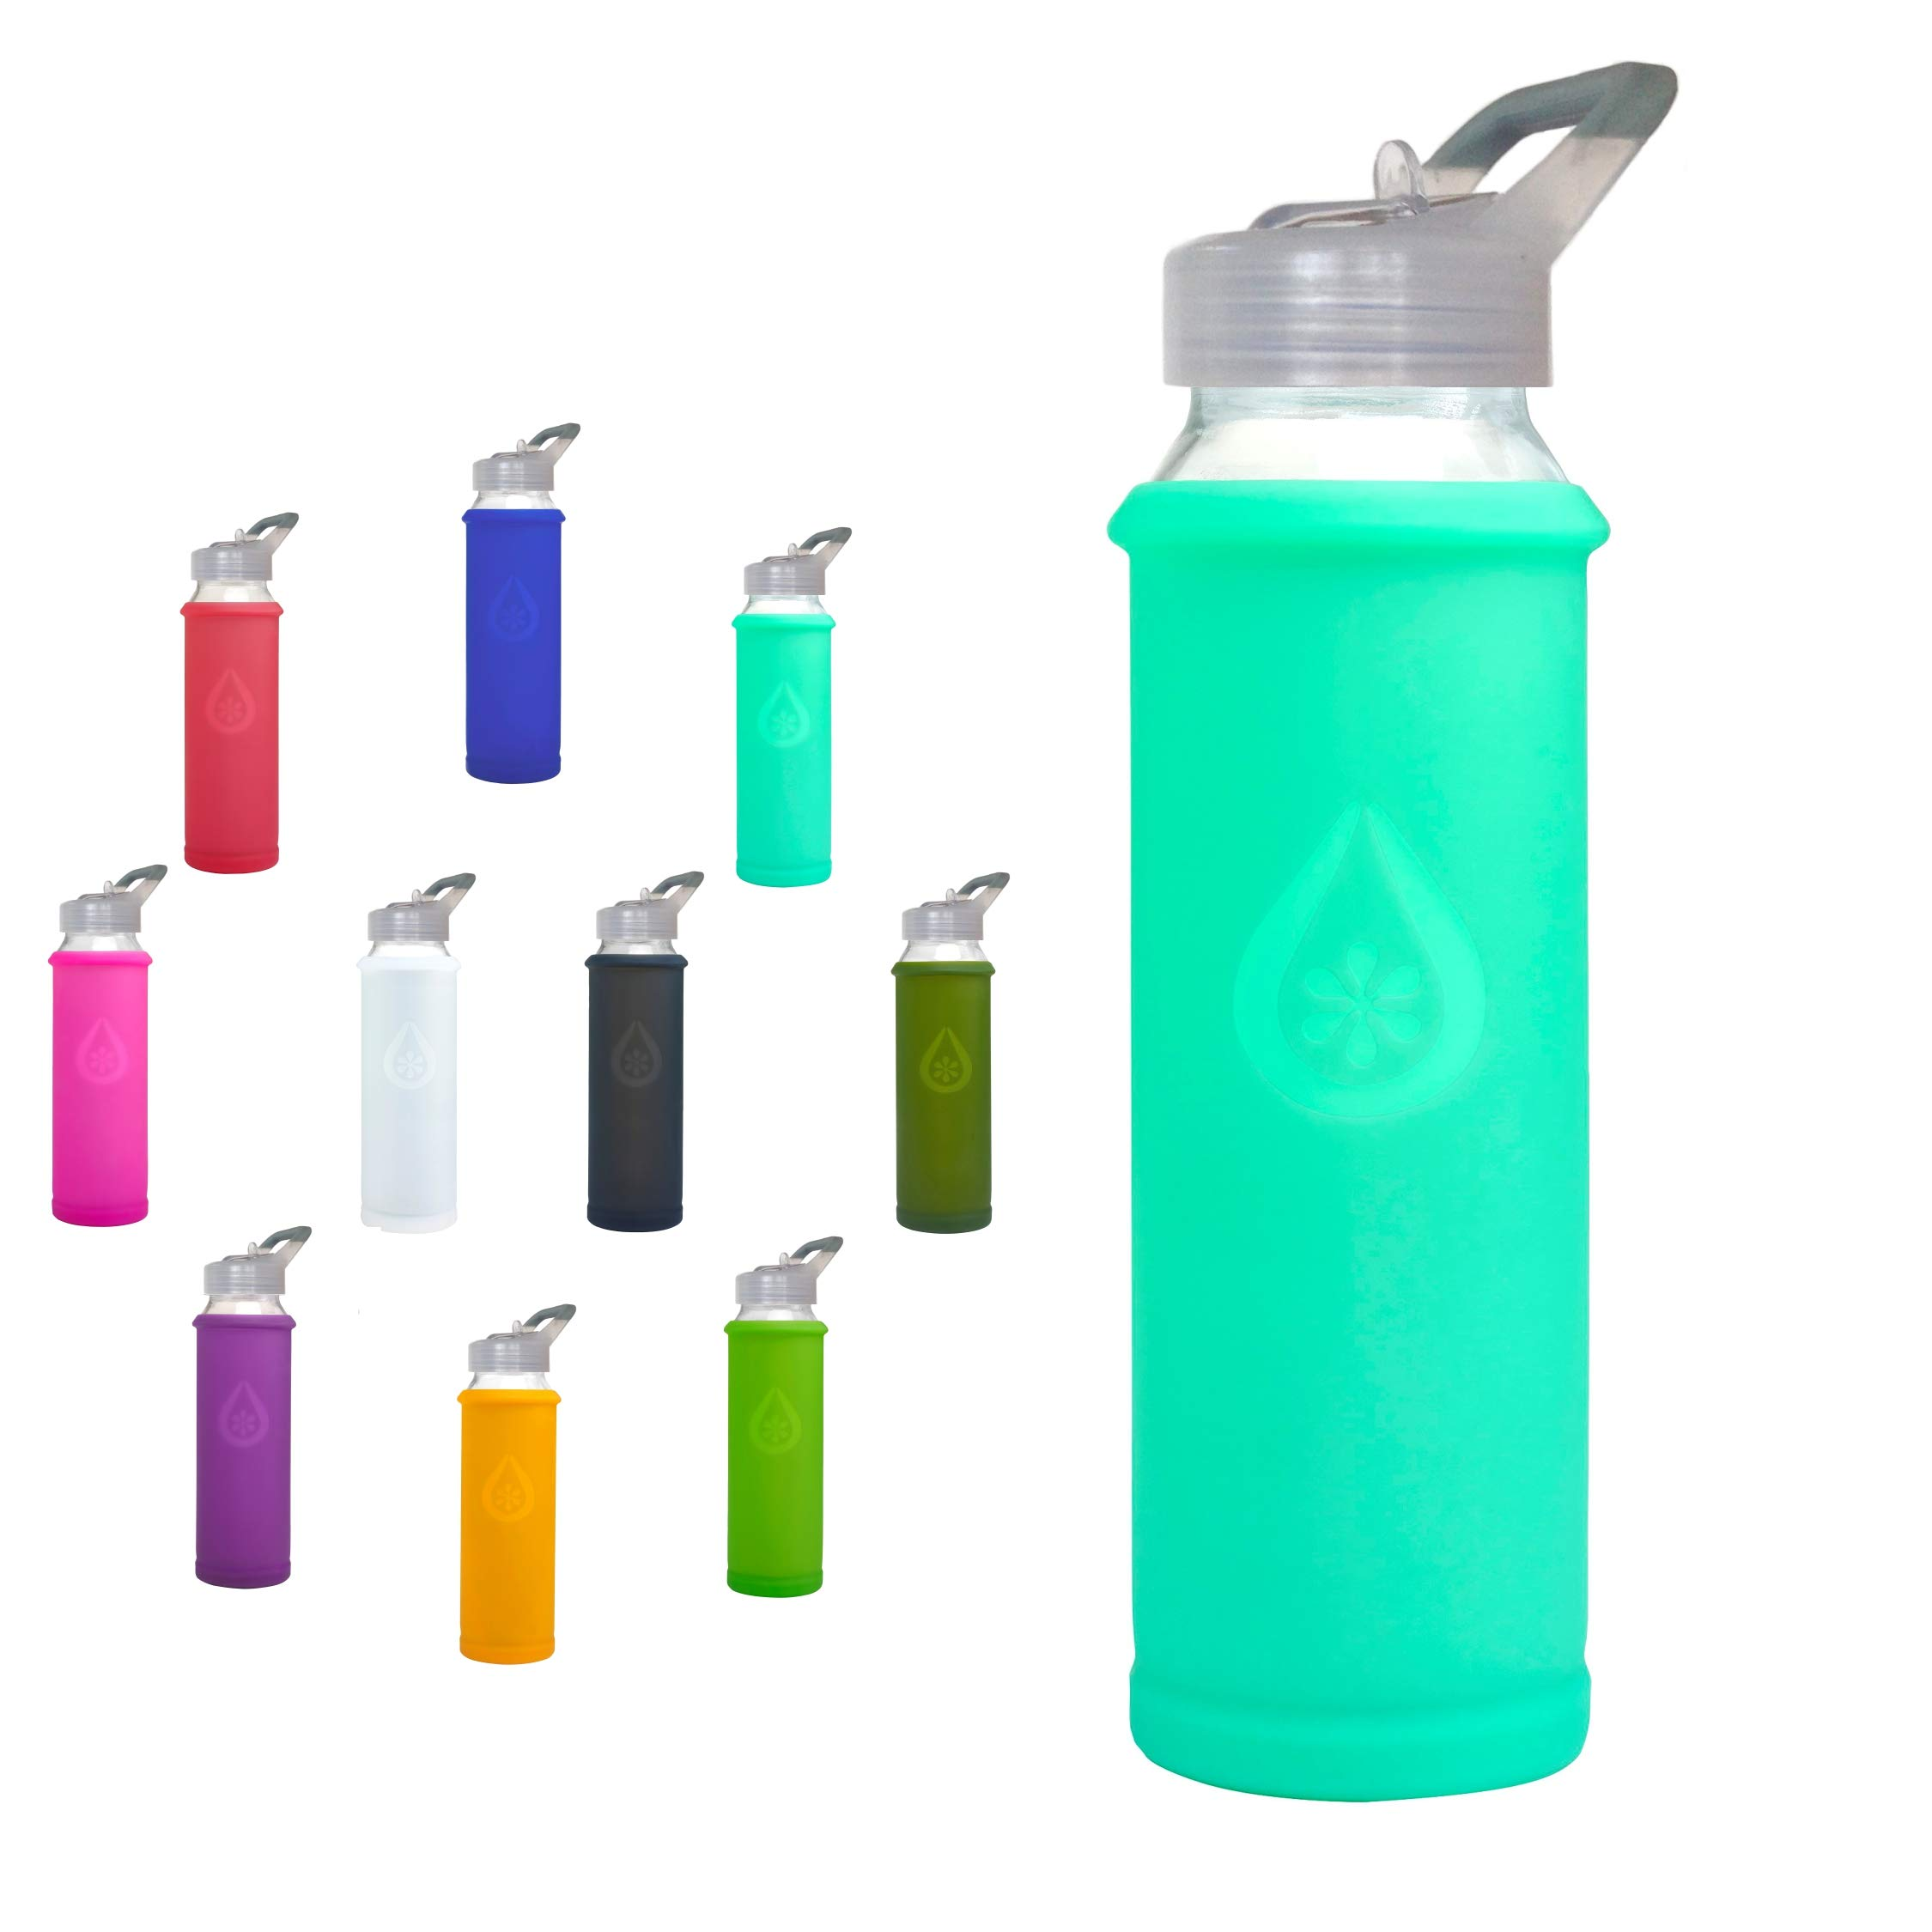 21 Ounce//630 ml Eveau Glass Water Bottle with Straw Lid Bumperguard Silicone Sleeve Wide Mouth Opening